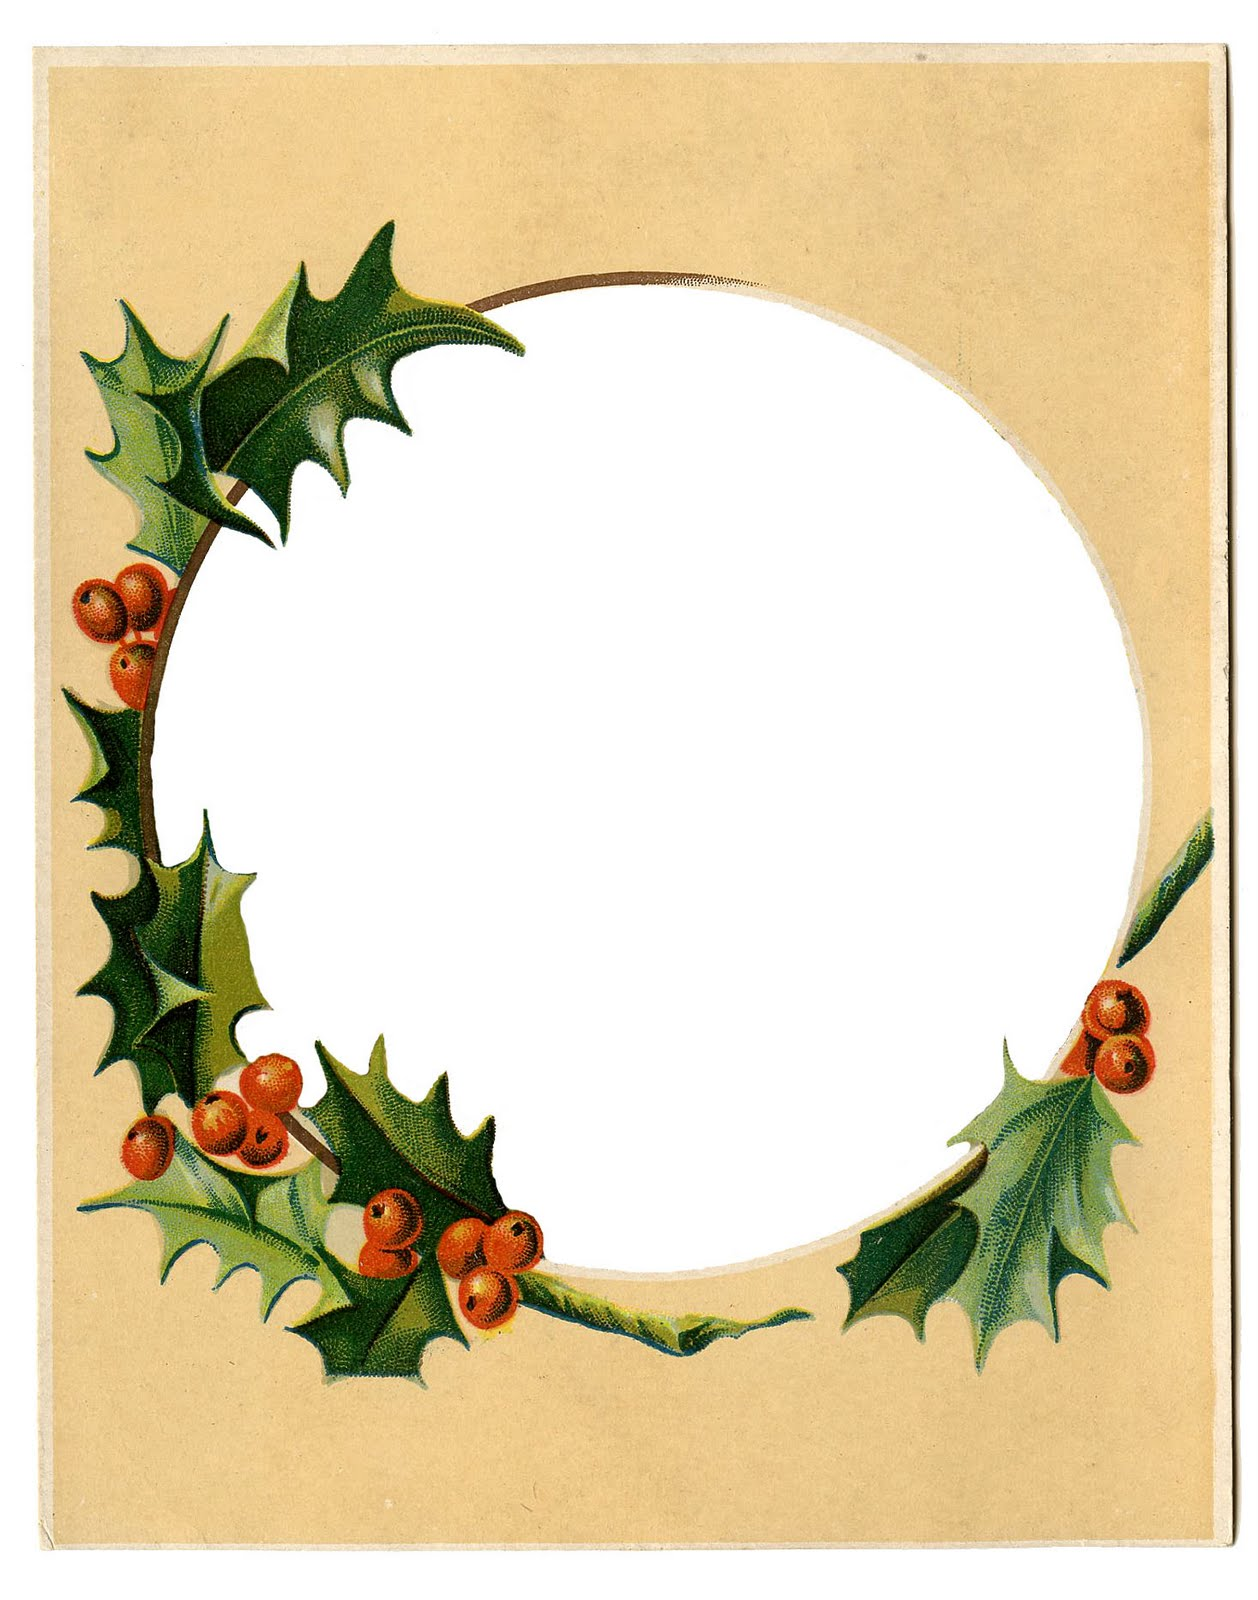 Victorian Christmas Borders Clipart - Clipart Kid